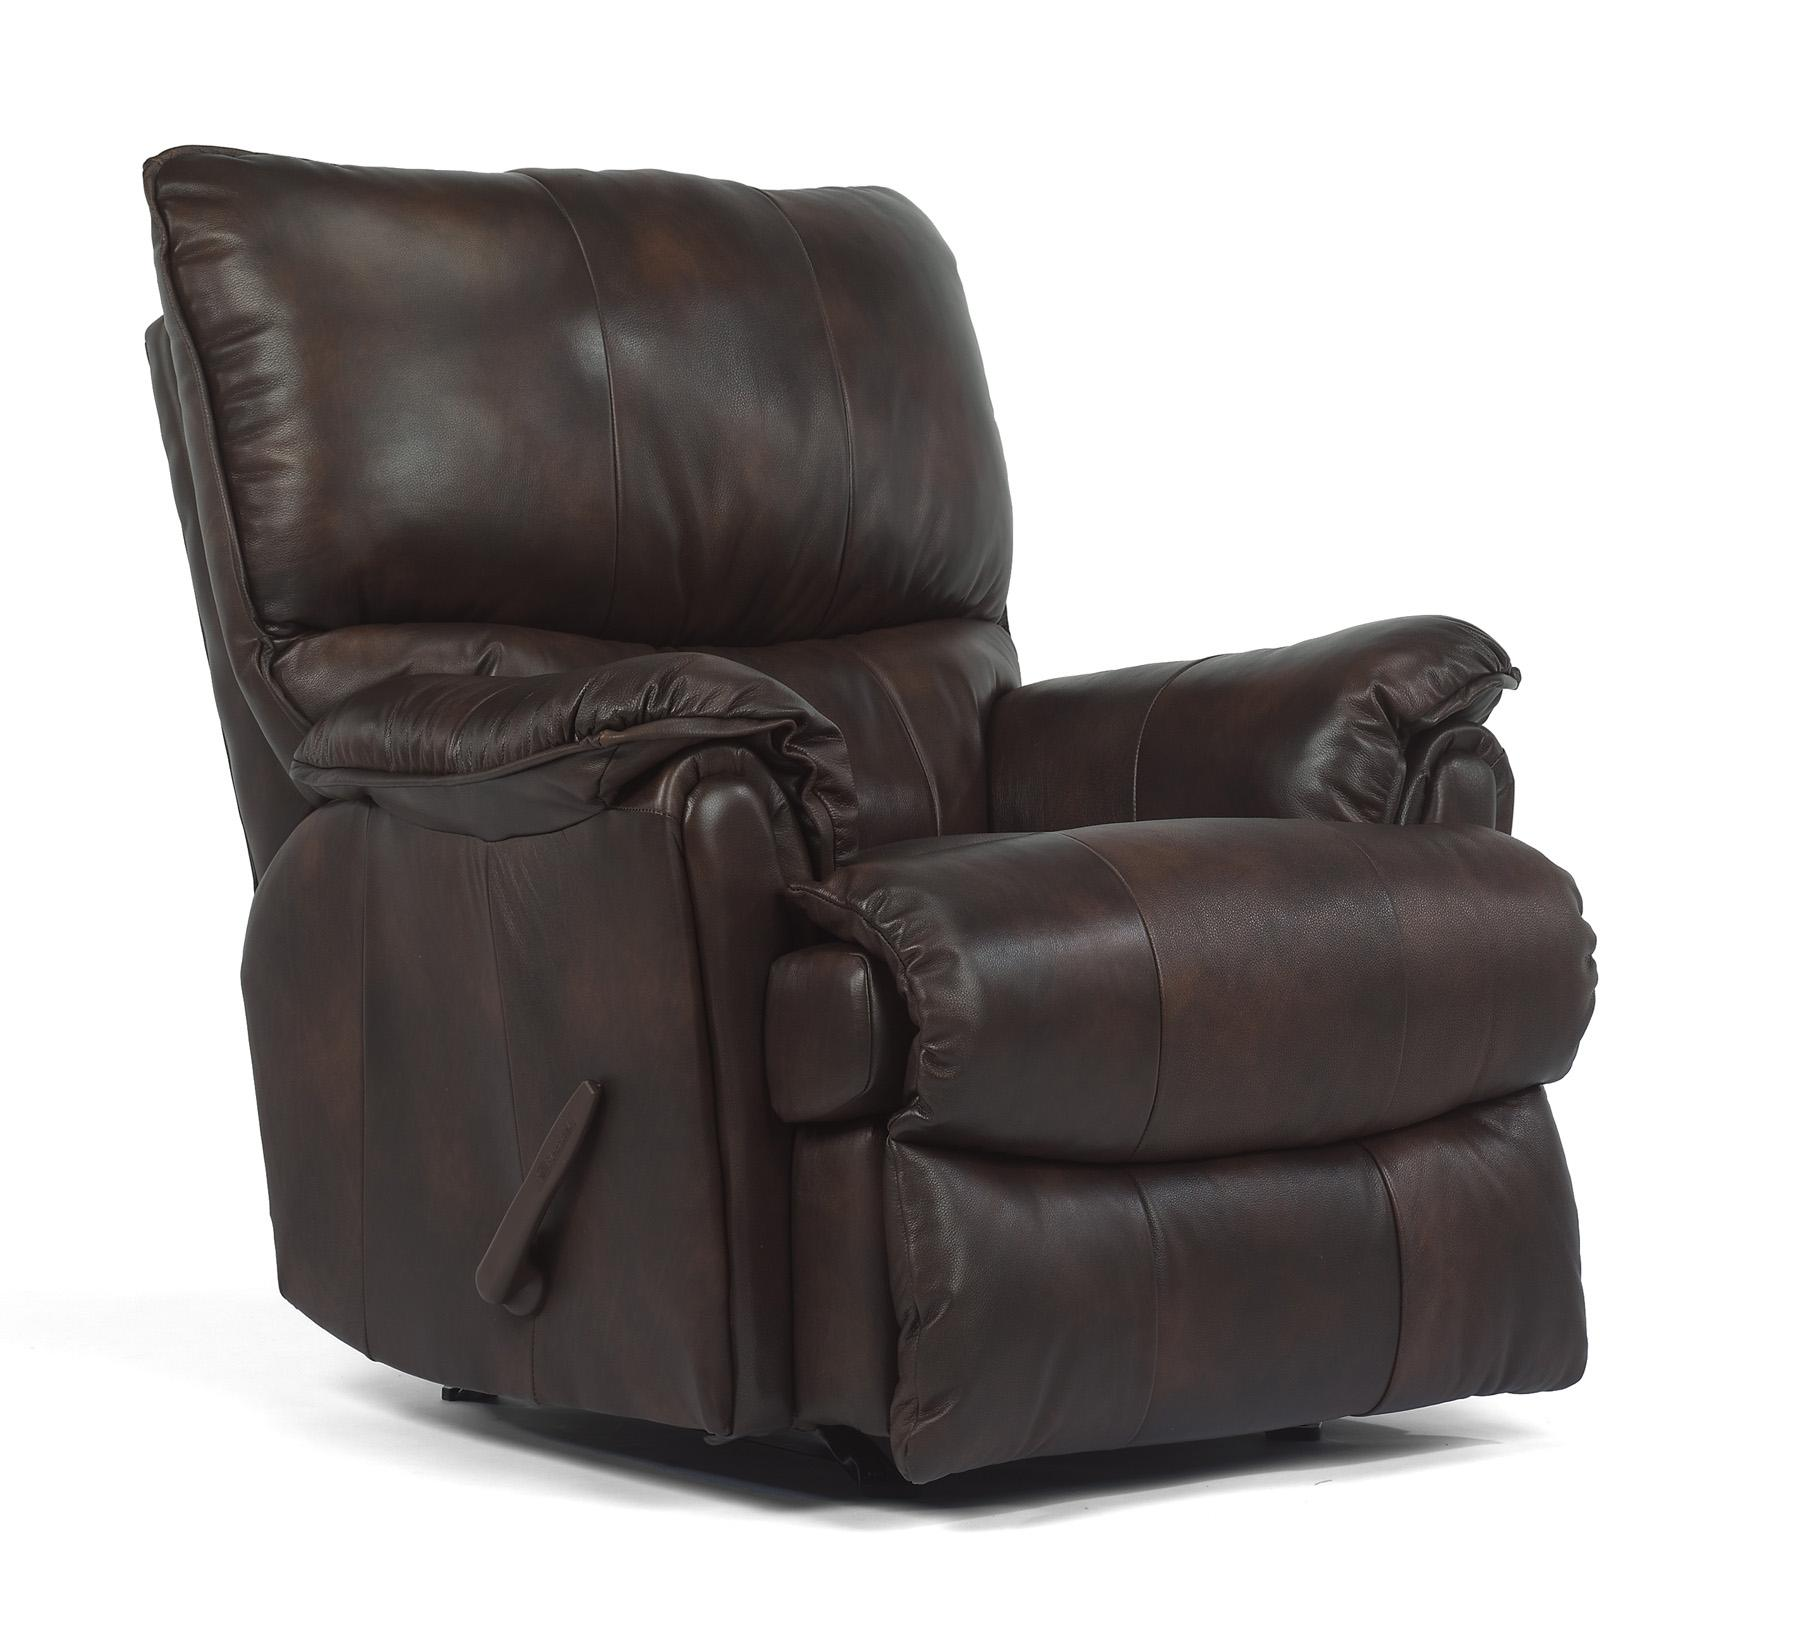 Flexsteel Accents Stockton Recliner - Item Number: 1217-510